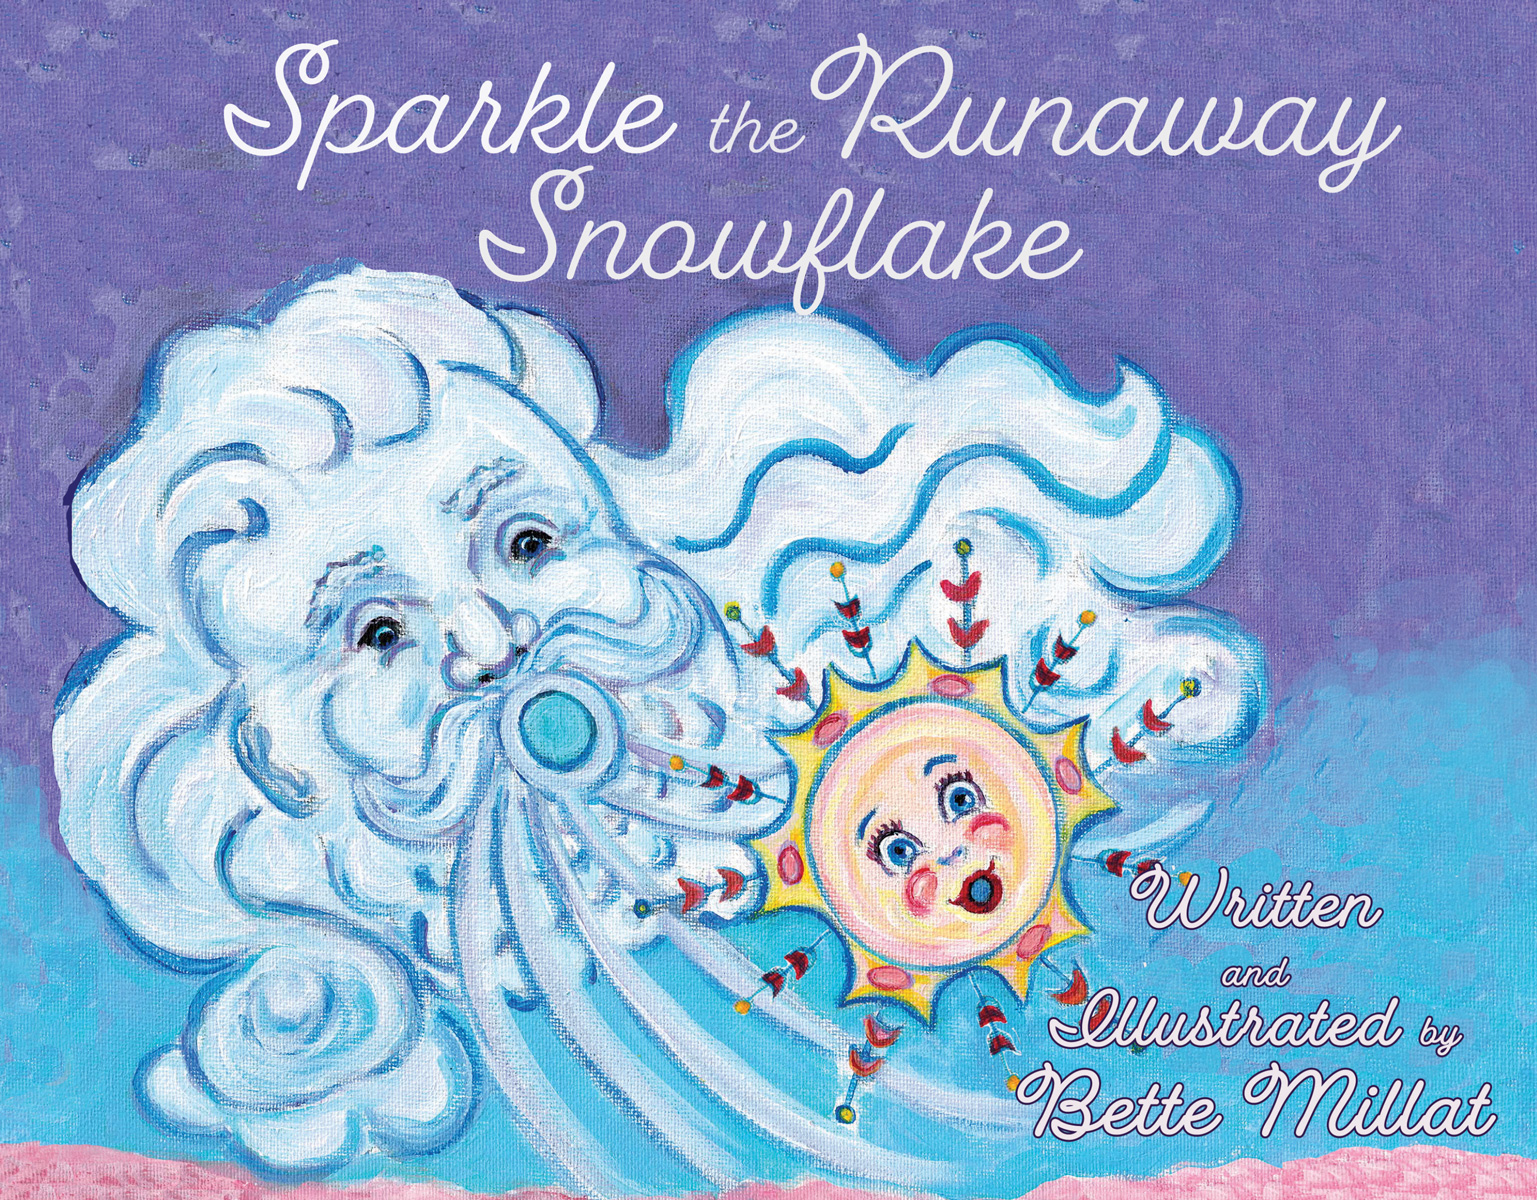 Sparkle the Runaway Snowflake